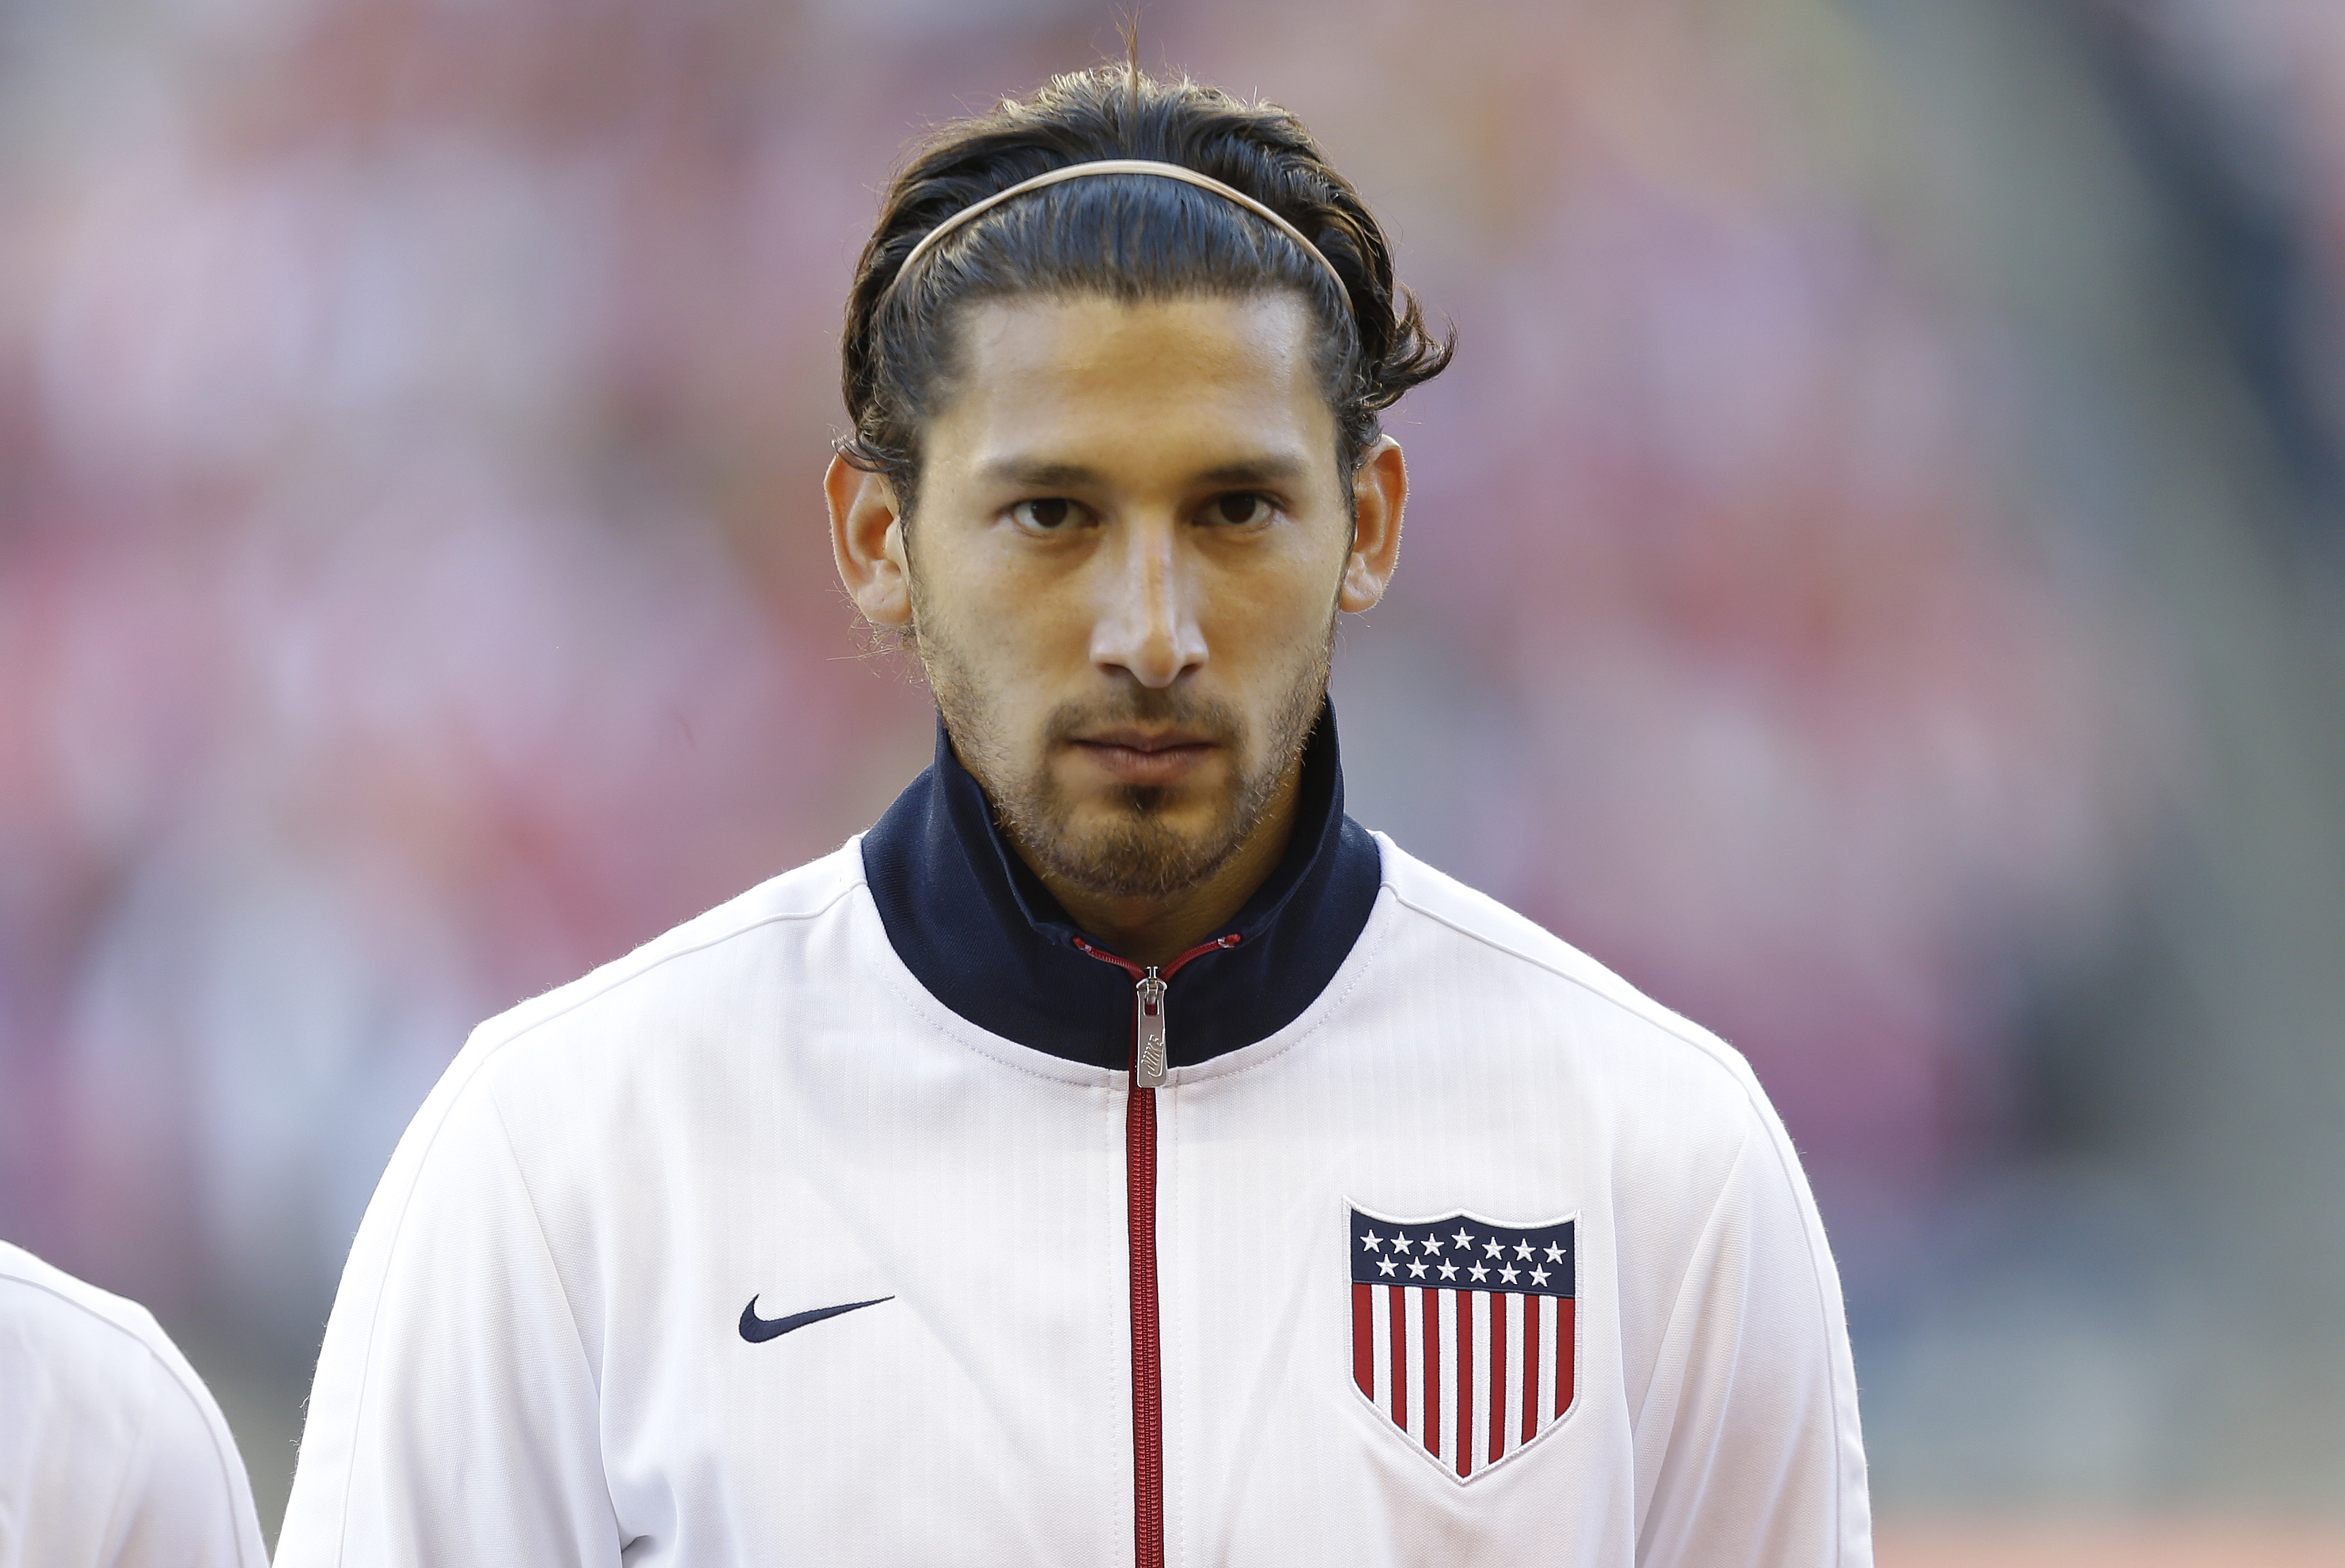 USA's Omar Gonzalez stands during player introductions before a World Cup qualifier soccer match against Panama, Tuesday, June 11, 2013, in Seattle. (AP Photo/Ted S. Warren)